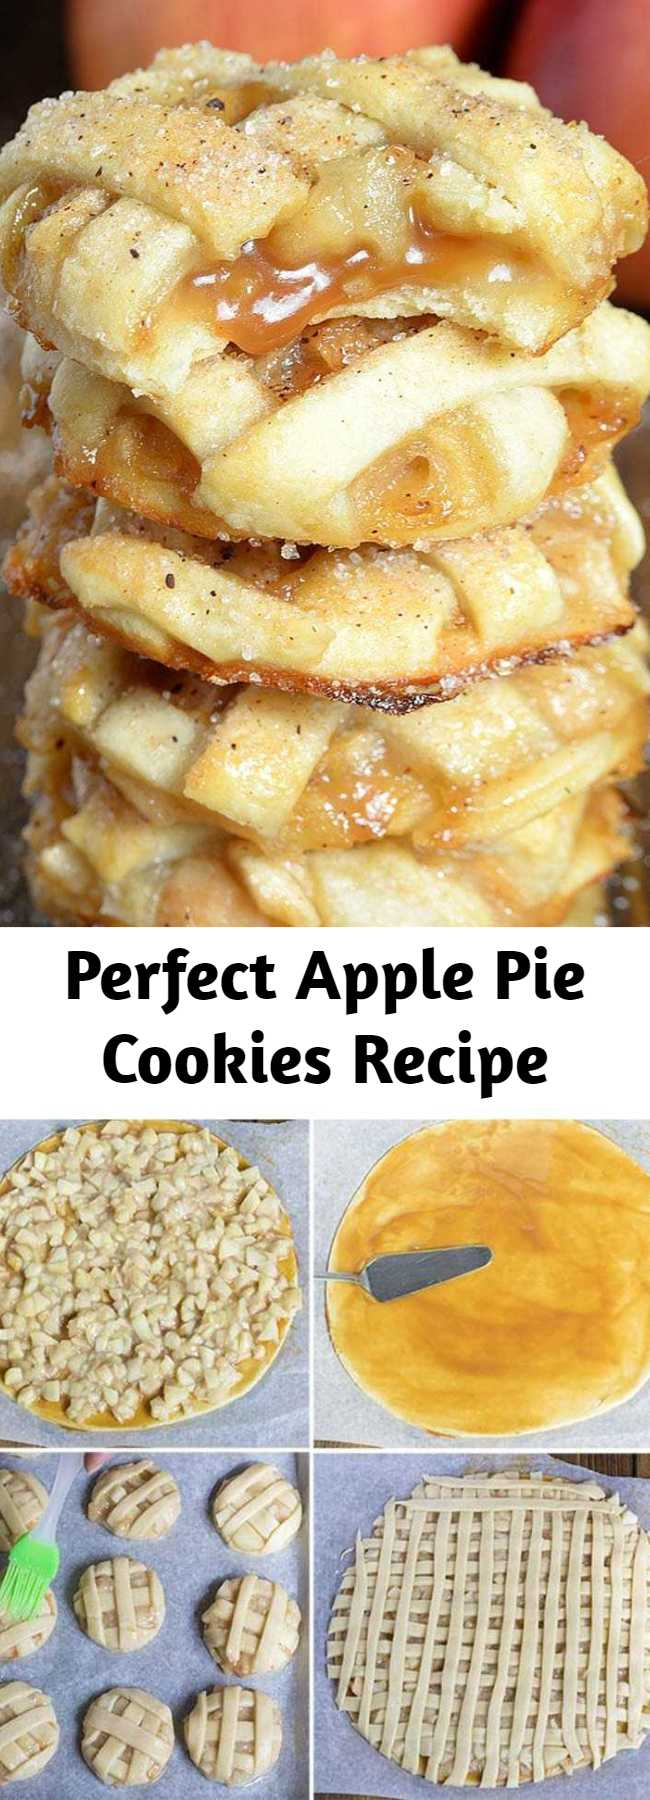 Perfect Apple Pie Cookies Recipe - Apple Pie Cookies – sticky and chewy, bite-sized caramel apple pies. Sometimes the regular old apple pie recipe is just too much dessert to handle. These gooey bites bring you the best of both worlds: the fruity-caramel flavor of traditional pie, with all of the convenience of a simple cookie recipe! (No fork required!!!)